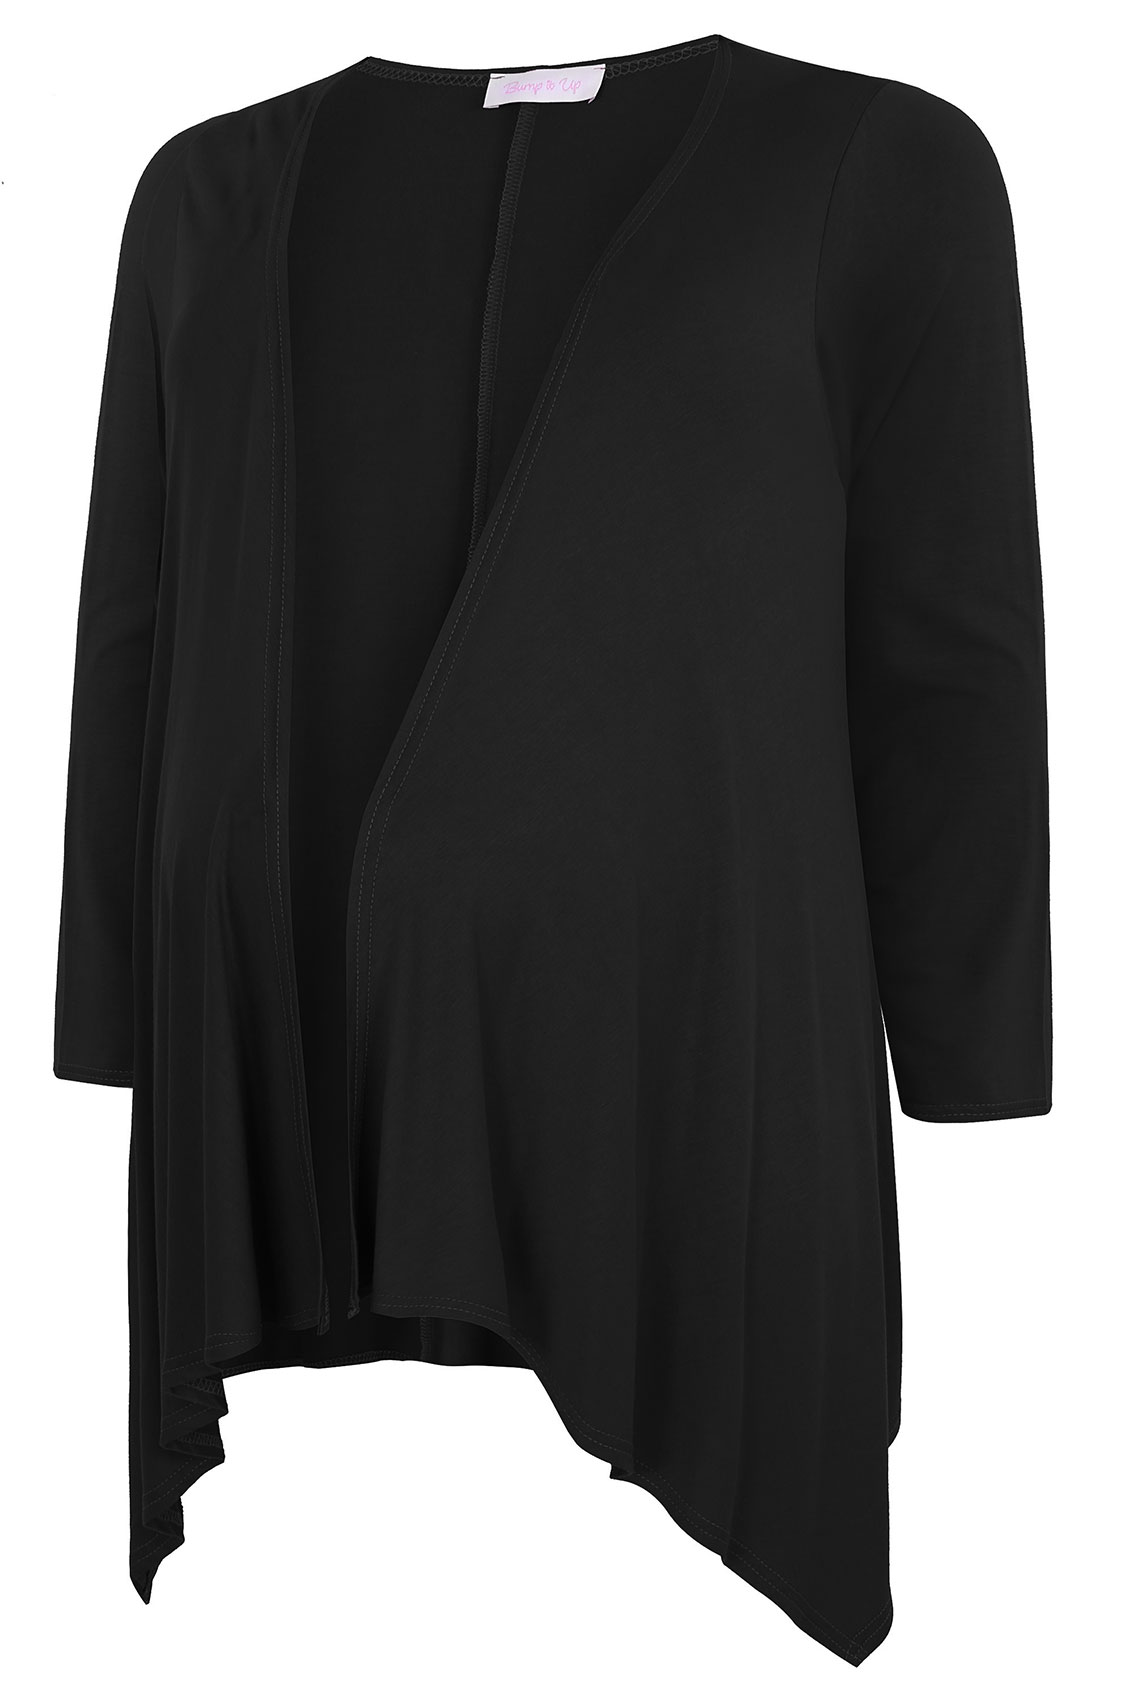 Rooms: BUMP IT UP MATERNITY Black Waterfall Cardigan Plus Size 16